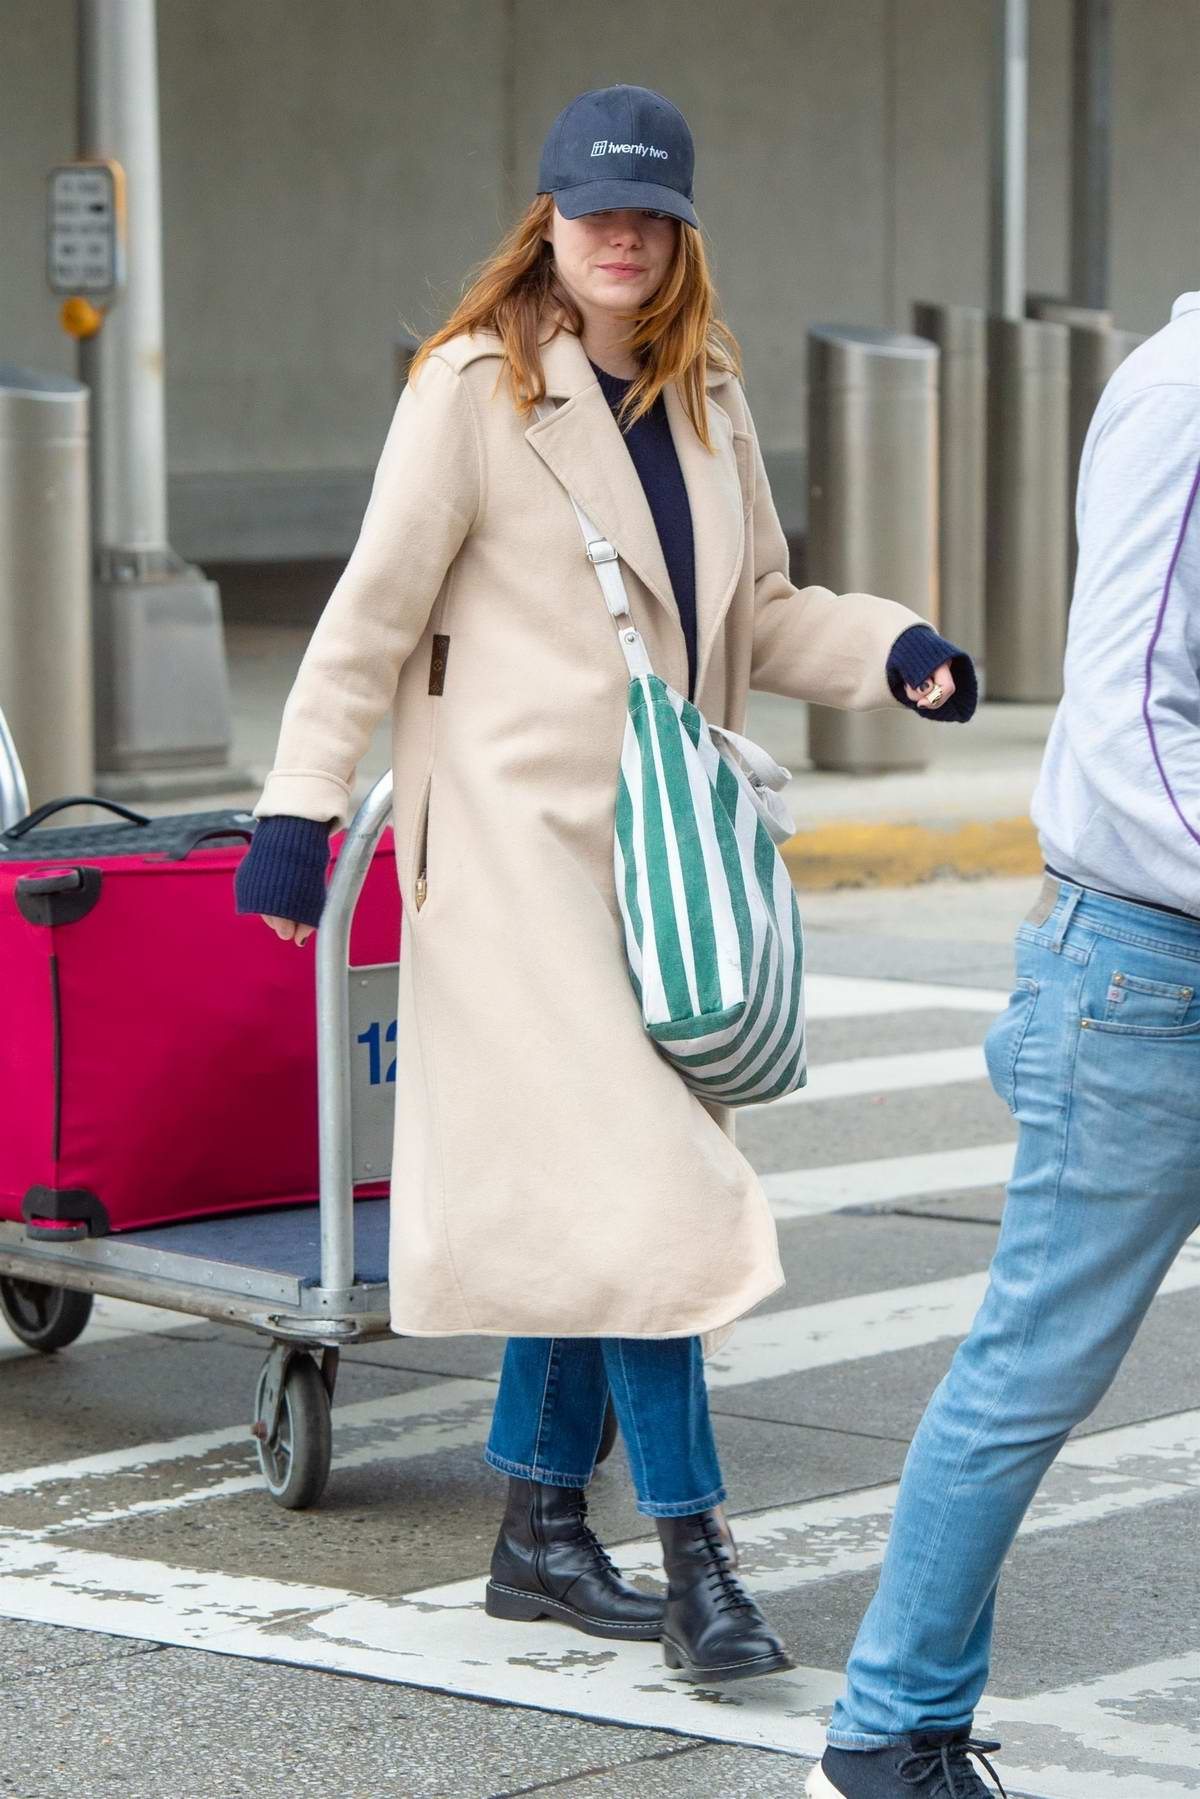 Emma Stone seen arriving at JFK Airport sporting a cozy yet stylish look in New York City